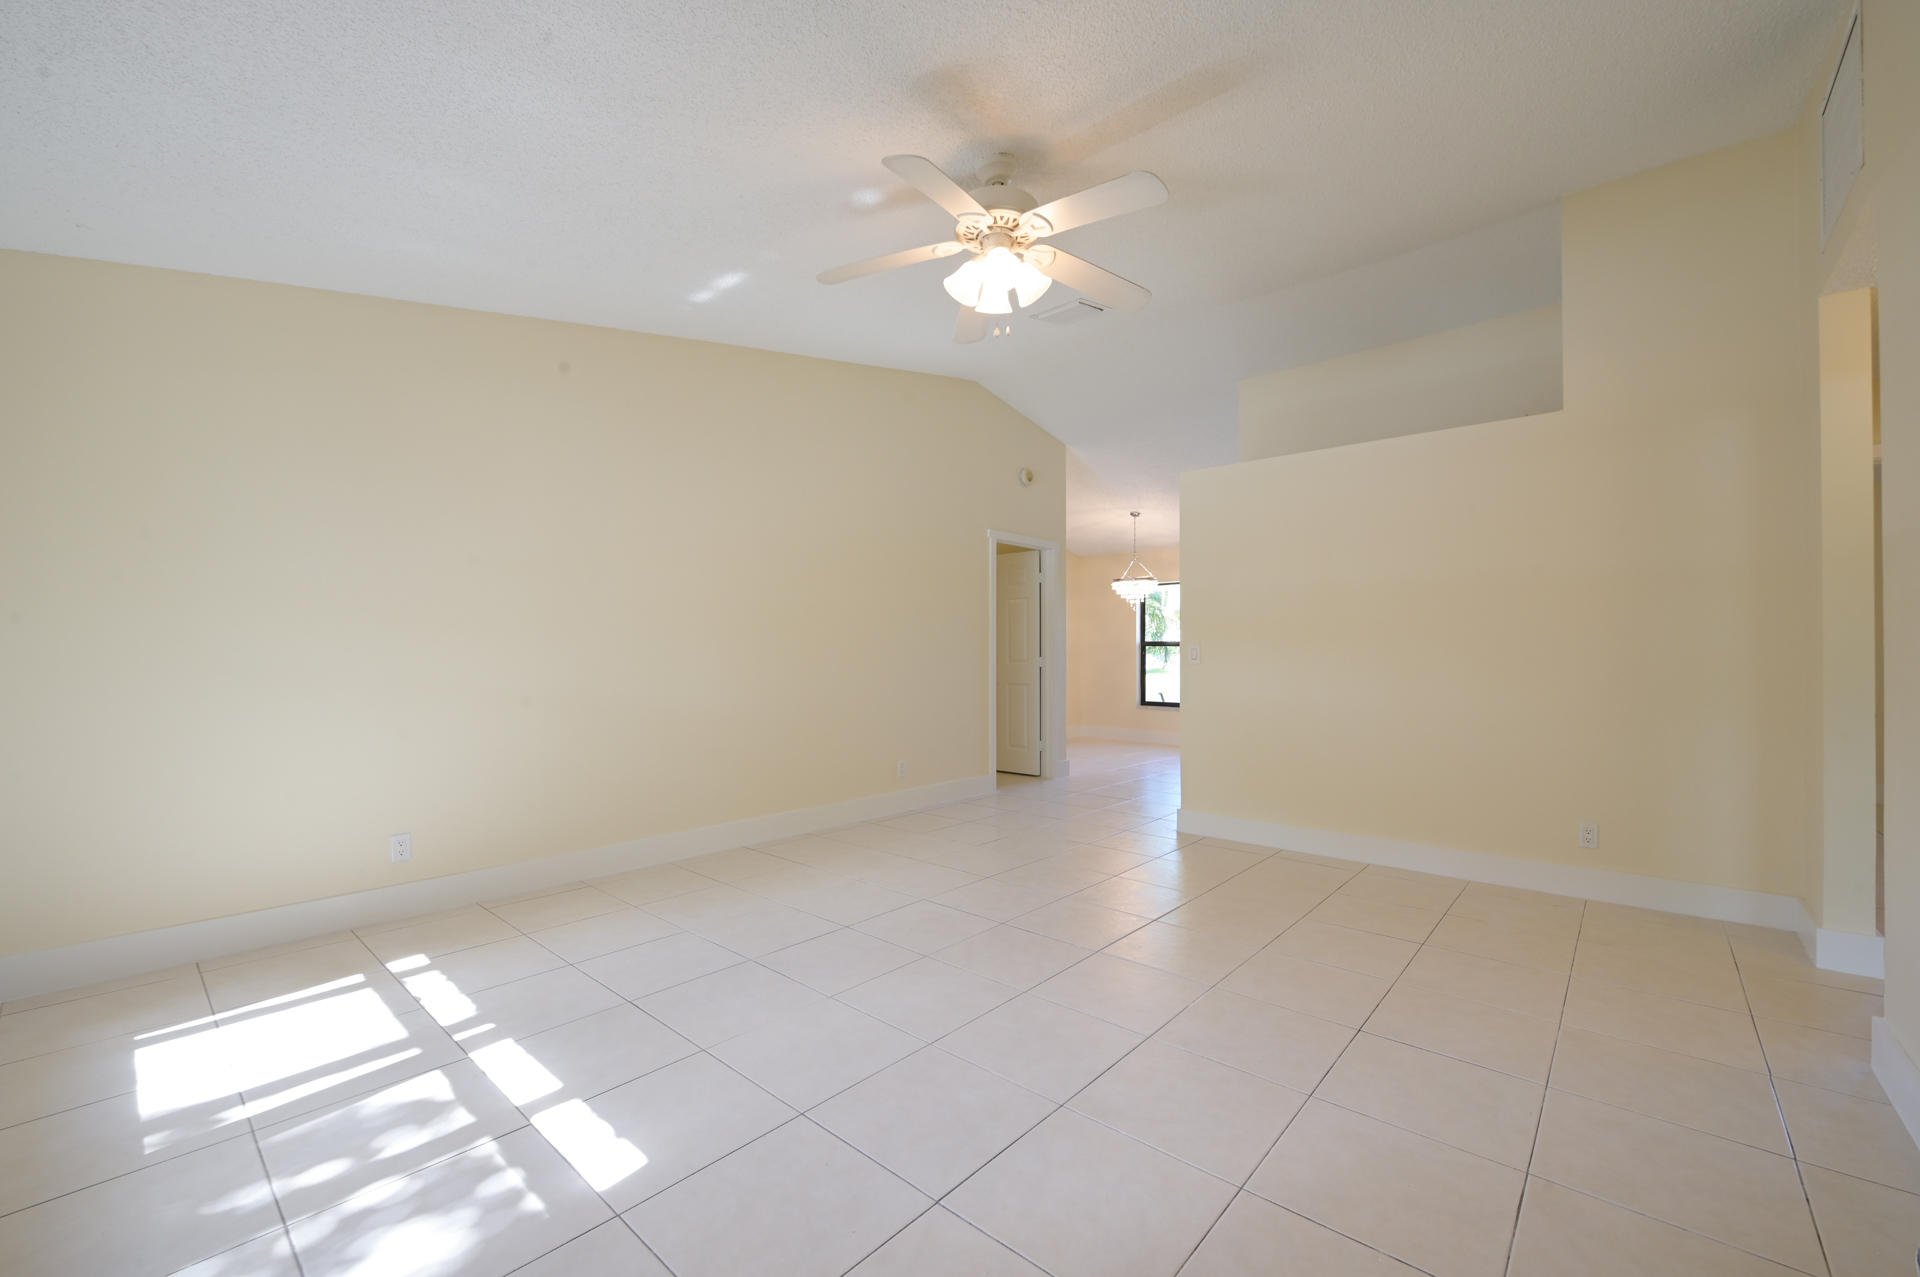 71 Via De Casas Norte Boynton Beach, FL 33426 small photo 4